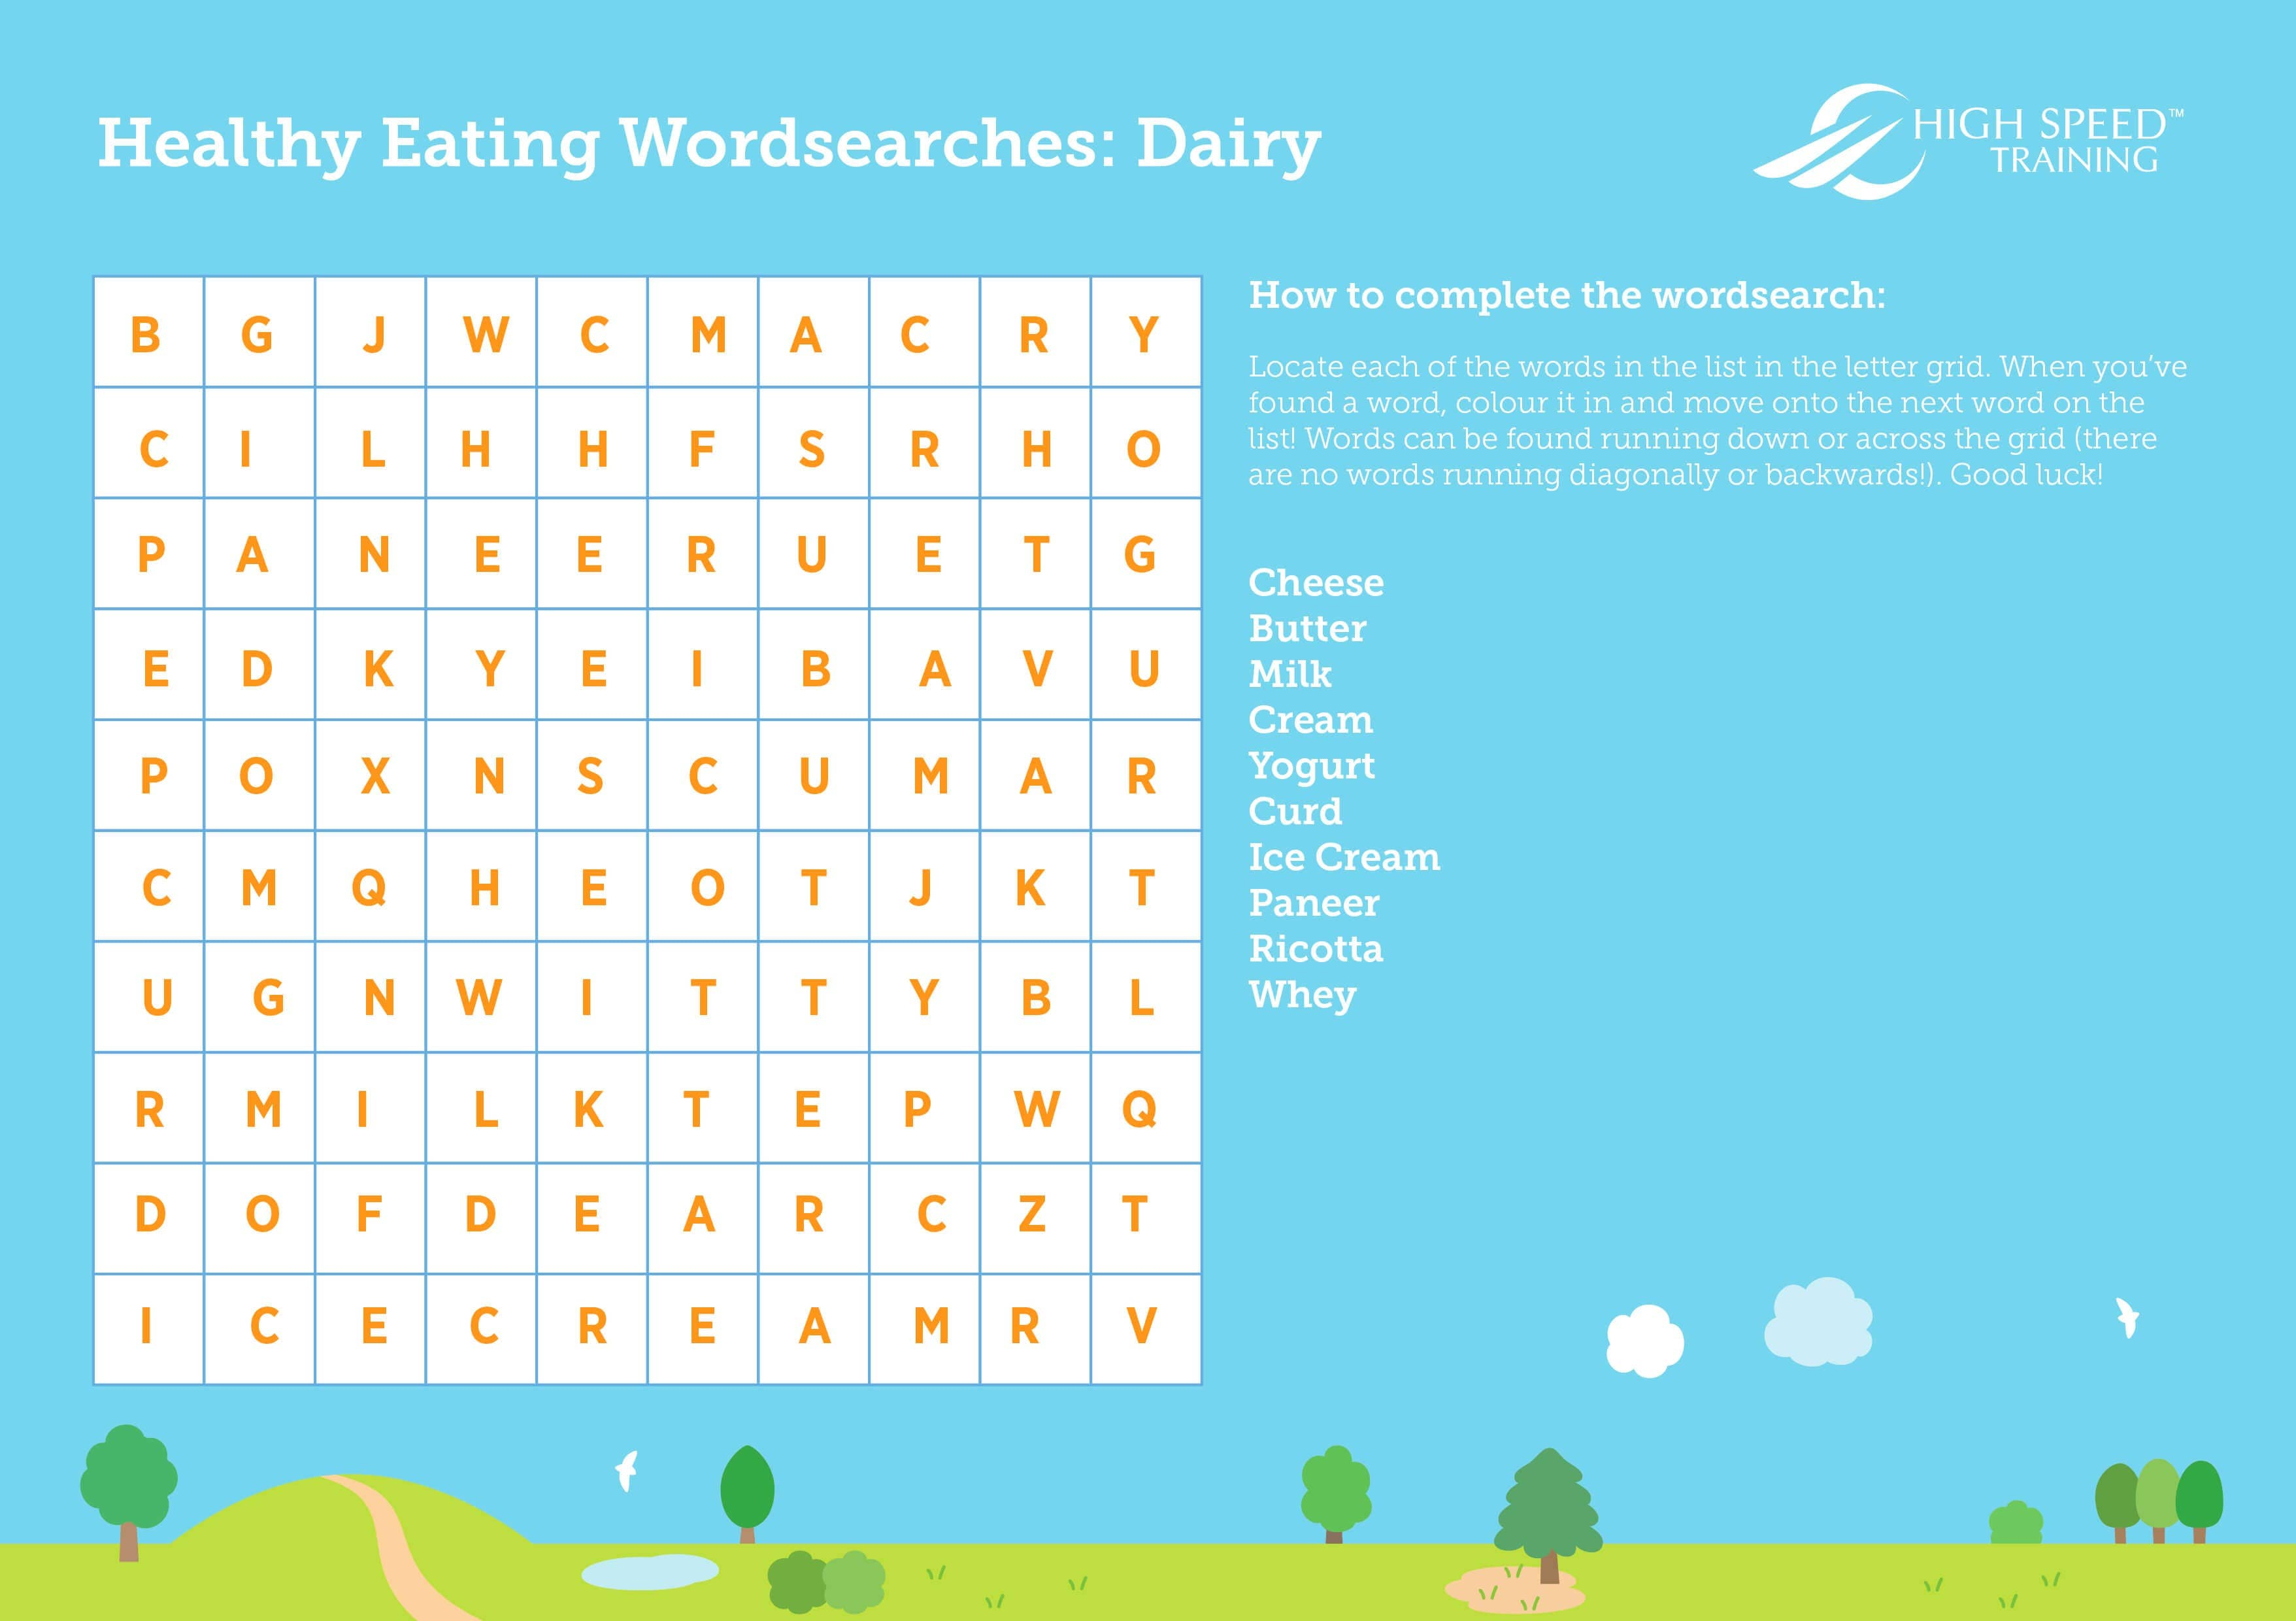 Healthy Eating Wordsearch Collection for Kids | High Speed Training